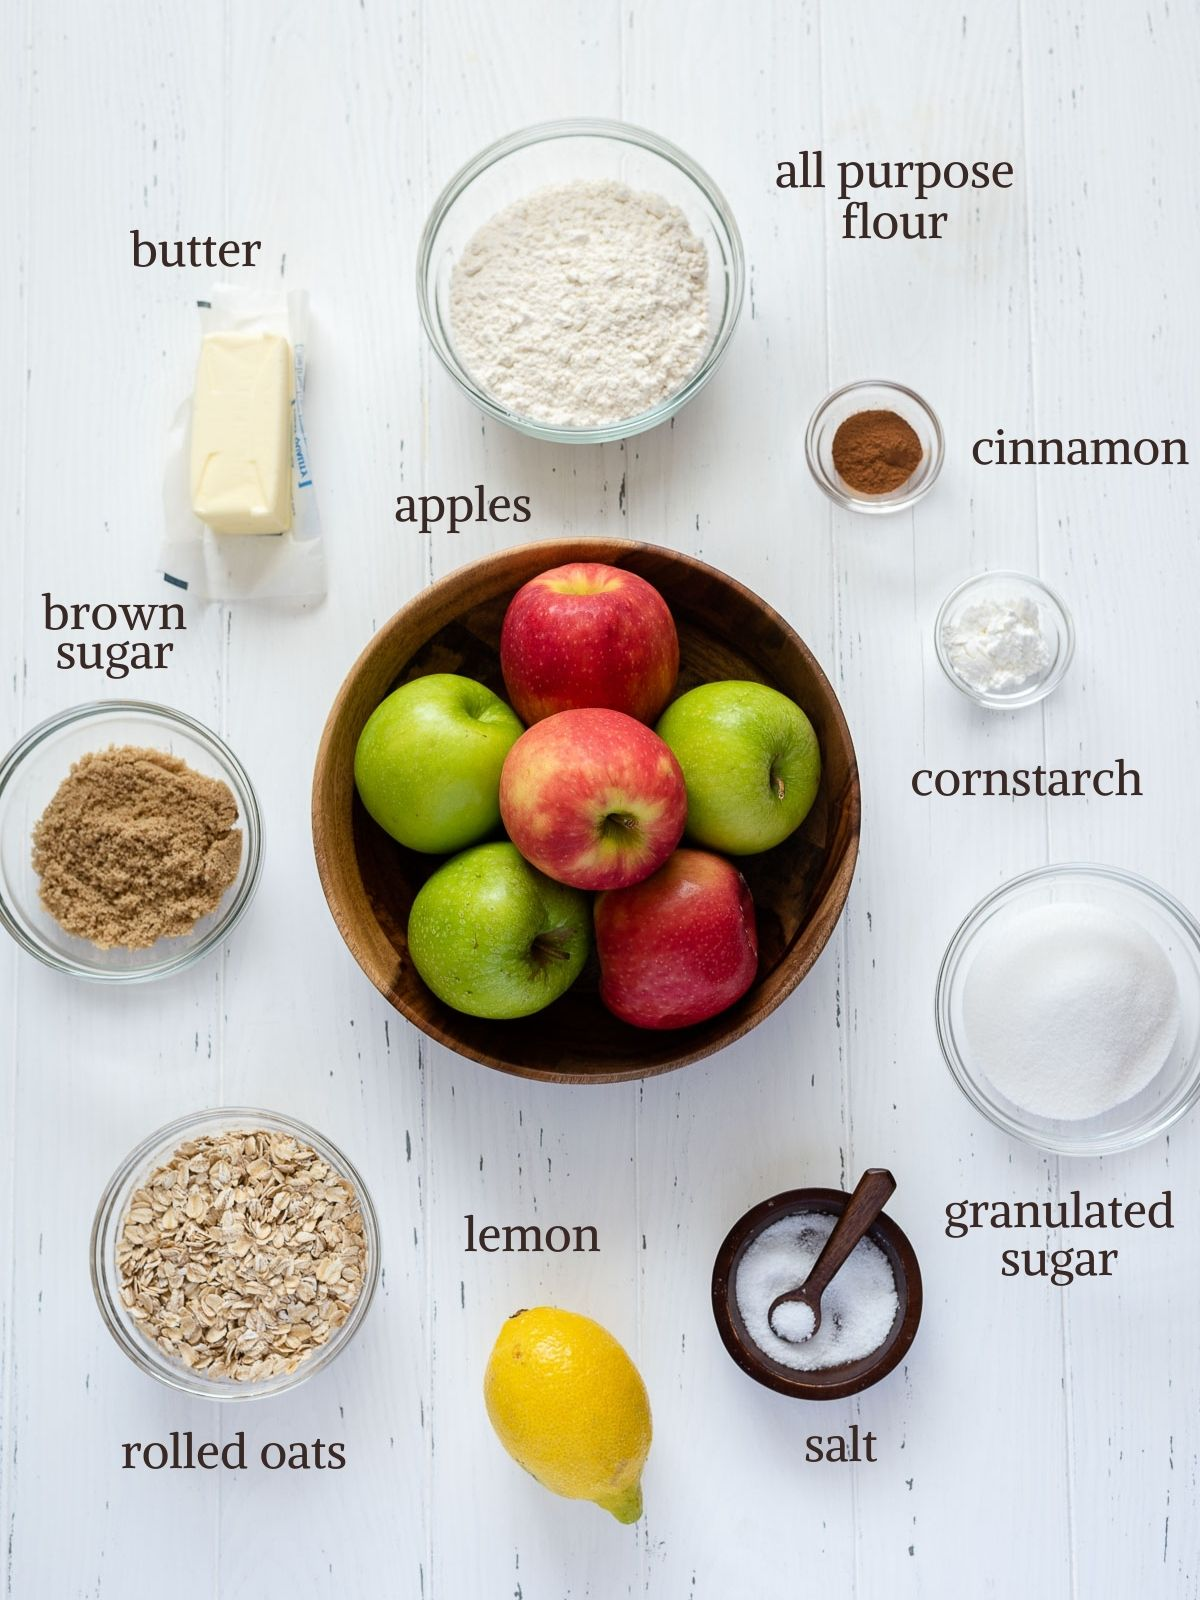 Apple crisp recipe ingredients